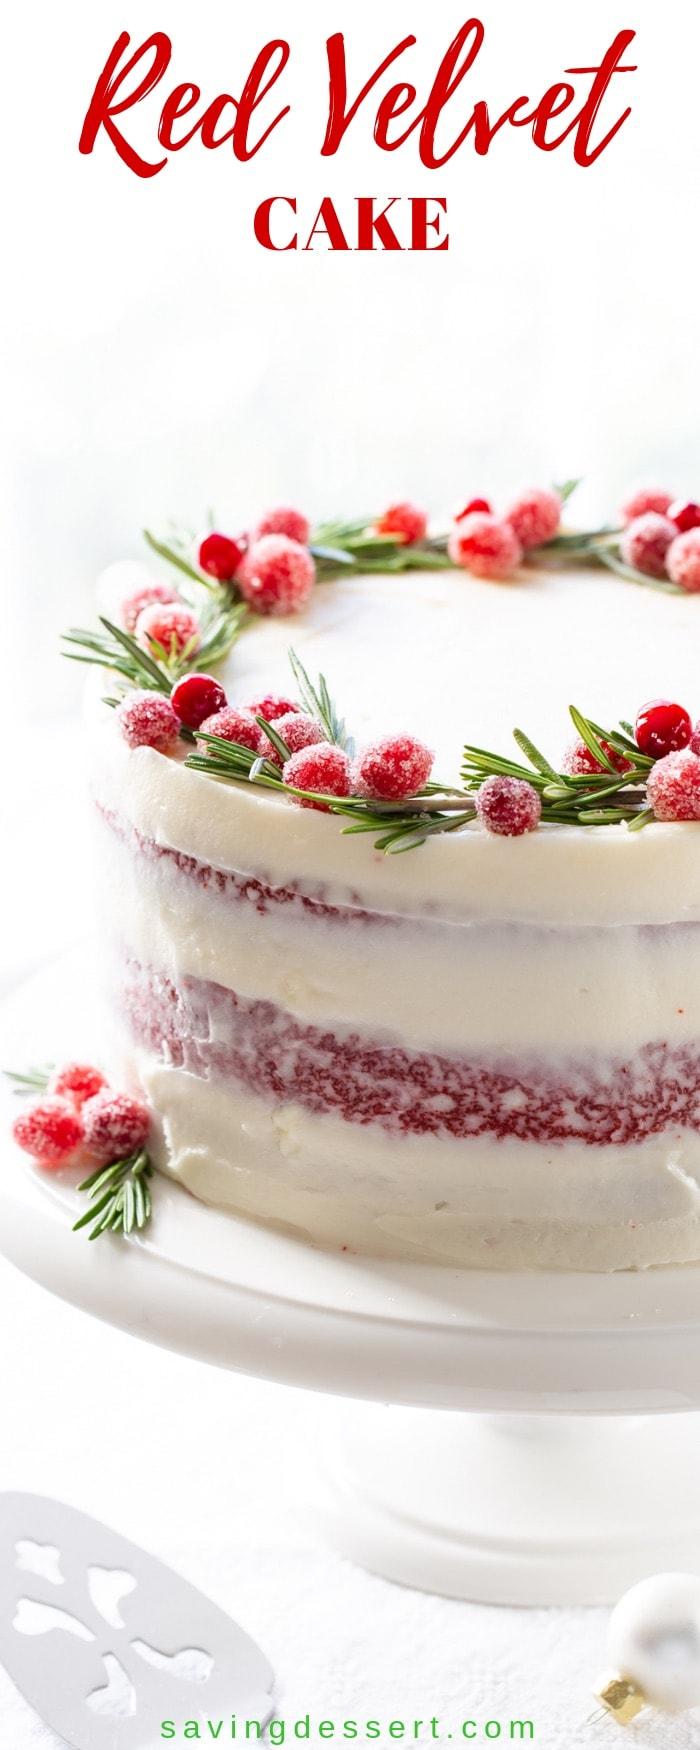 Classic Red Velvet Cake with a delicious tang from the buttermilk, hints of cocoa and a moist, light crumb. And let's not forget the best cream cheese icing on this earth! #redvelvetcake #Christmascake #redvelvetChristmascake #christmasbaking #holidaybaking #holidaycake #cake #bestredvelvetcake #savingroomfordessert